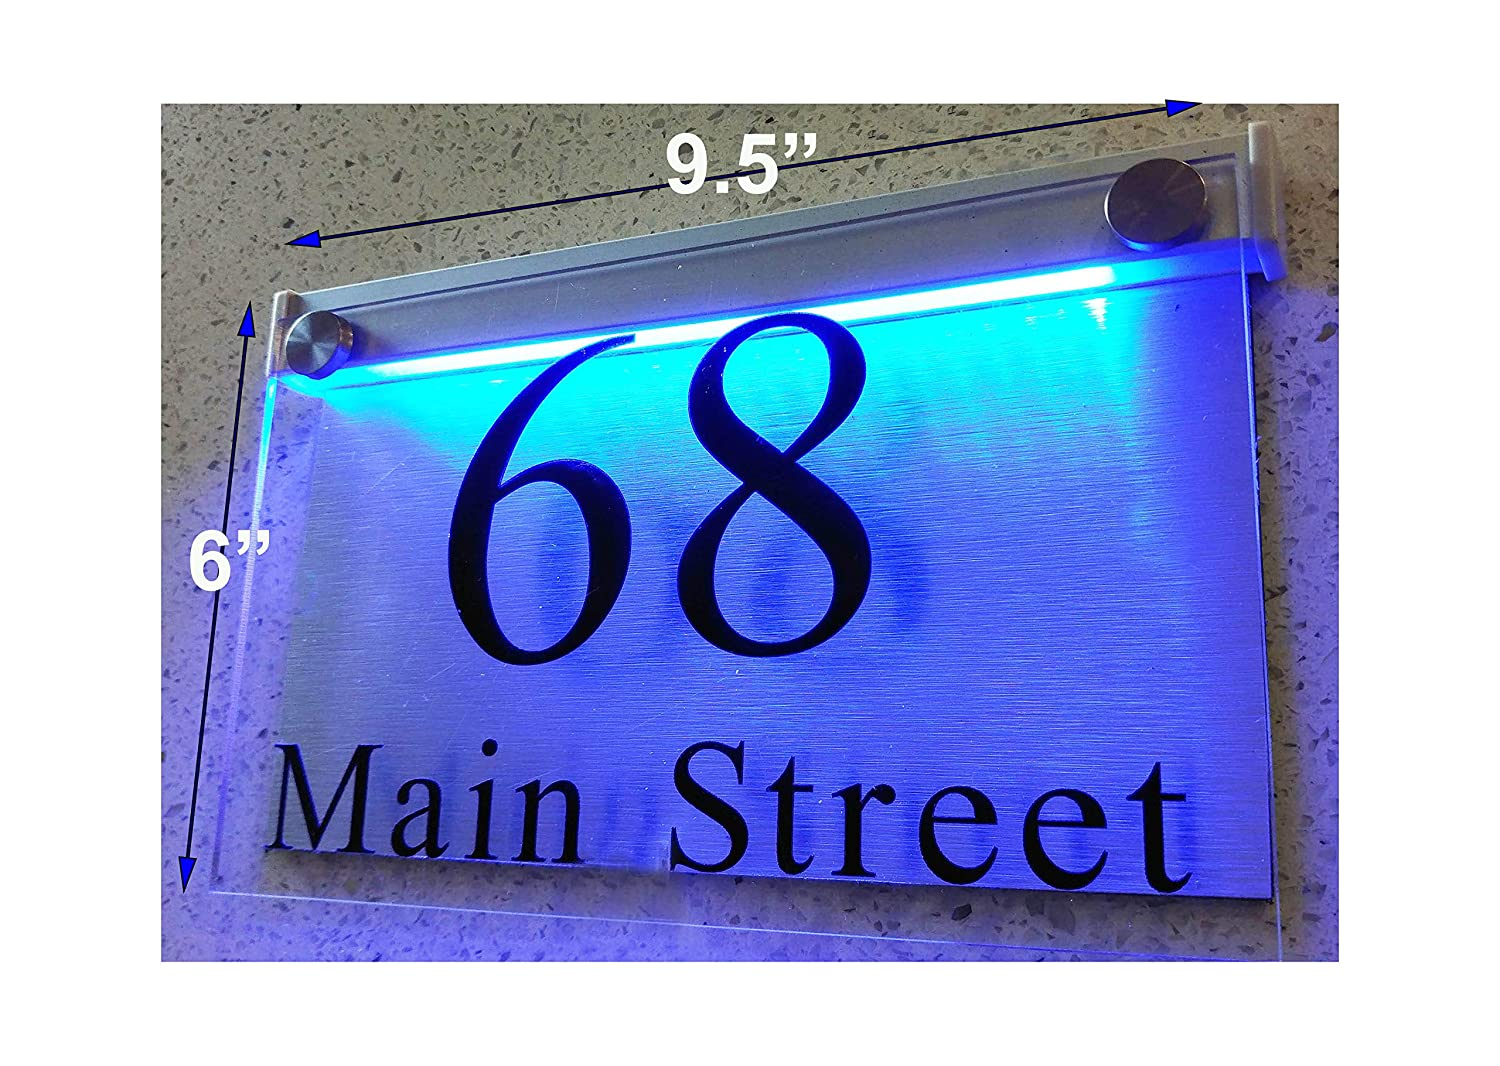 Thedisplaydeal led illuminated modern house numbers address plaque 9 5x6x1 rectangle clear acrylic and brushed aluminum background double panel